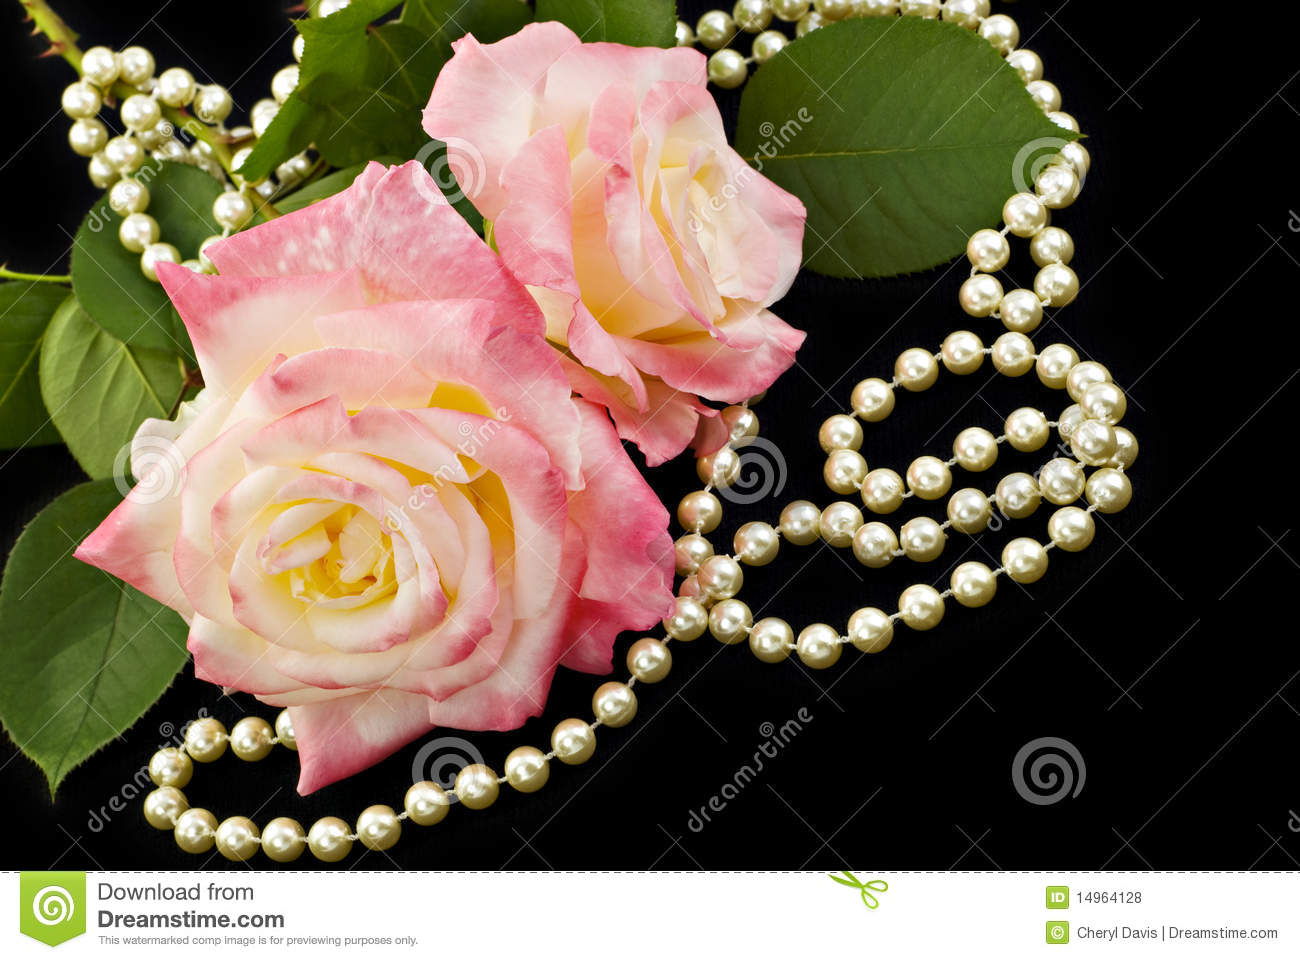 roses and pearls - photo #25